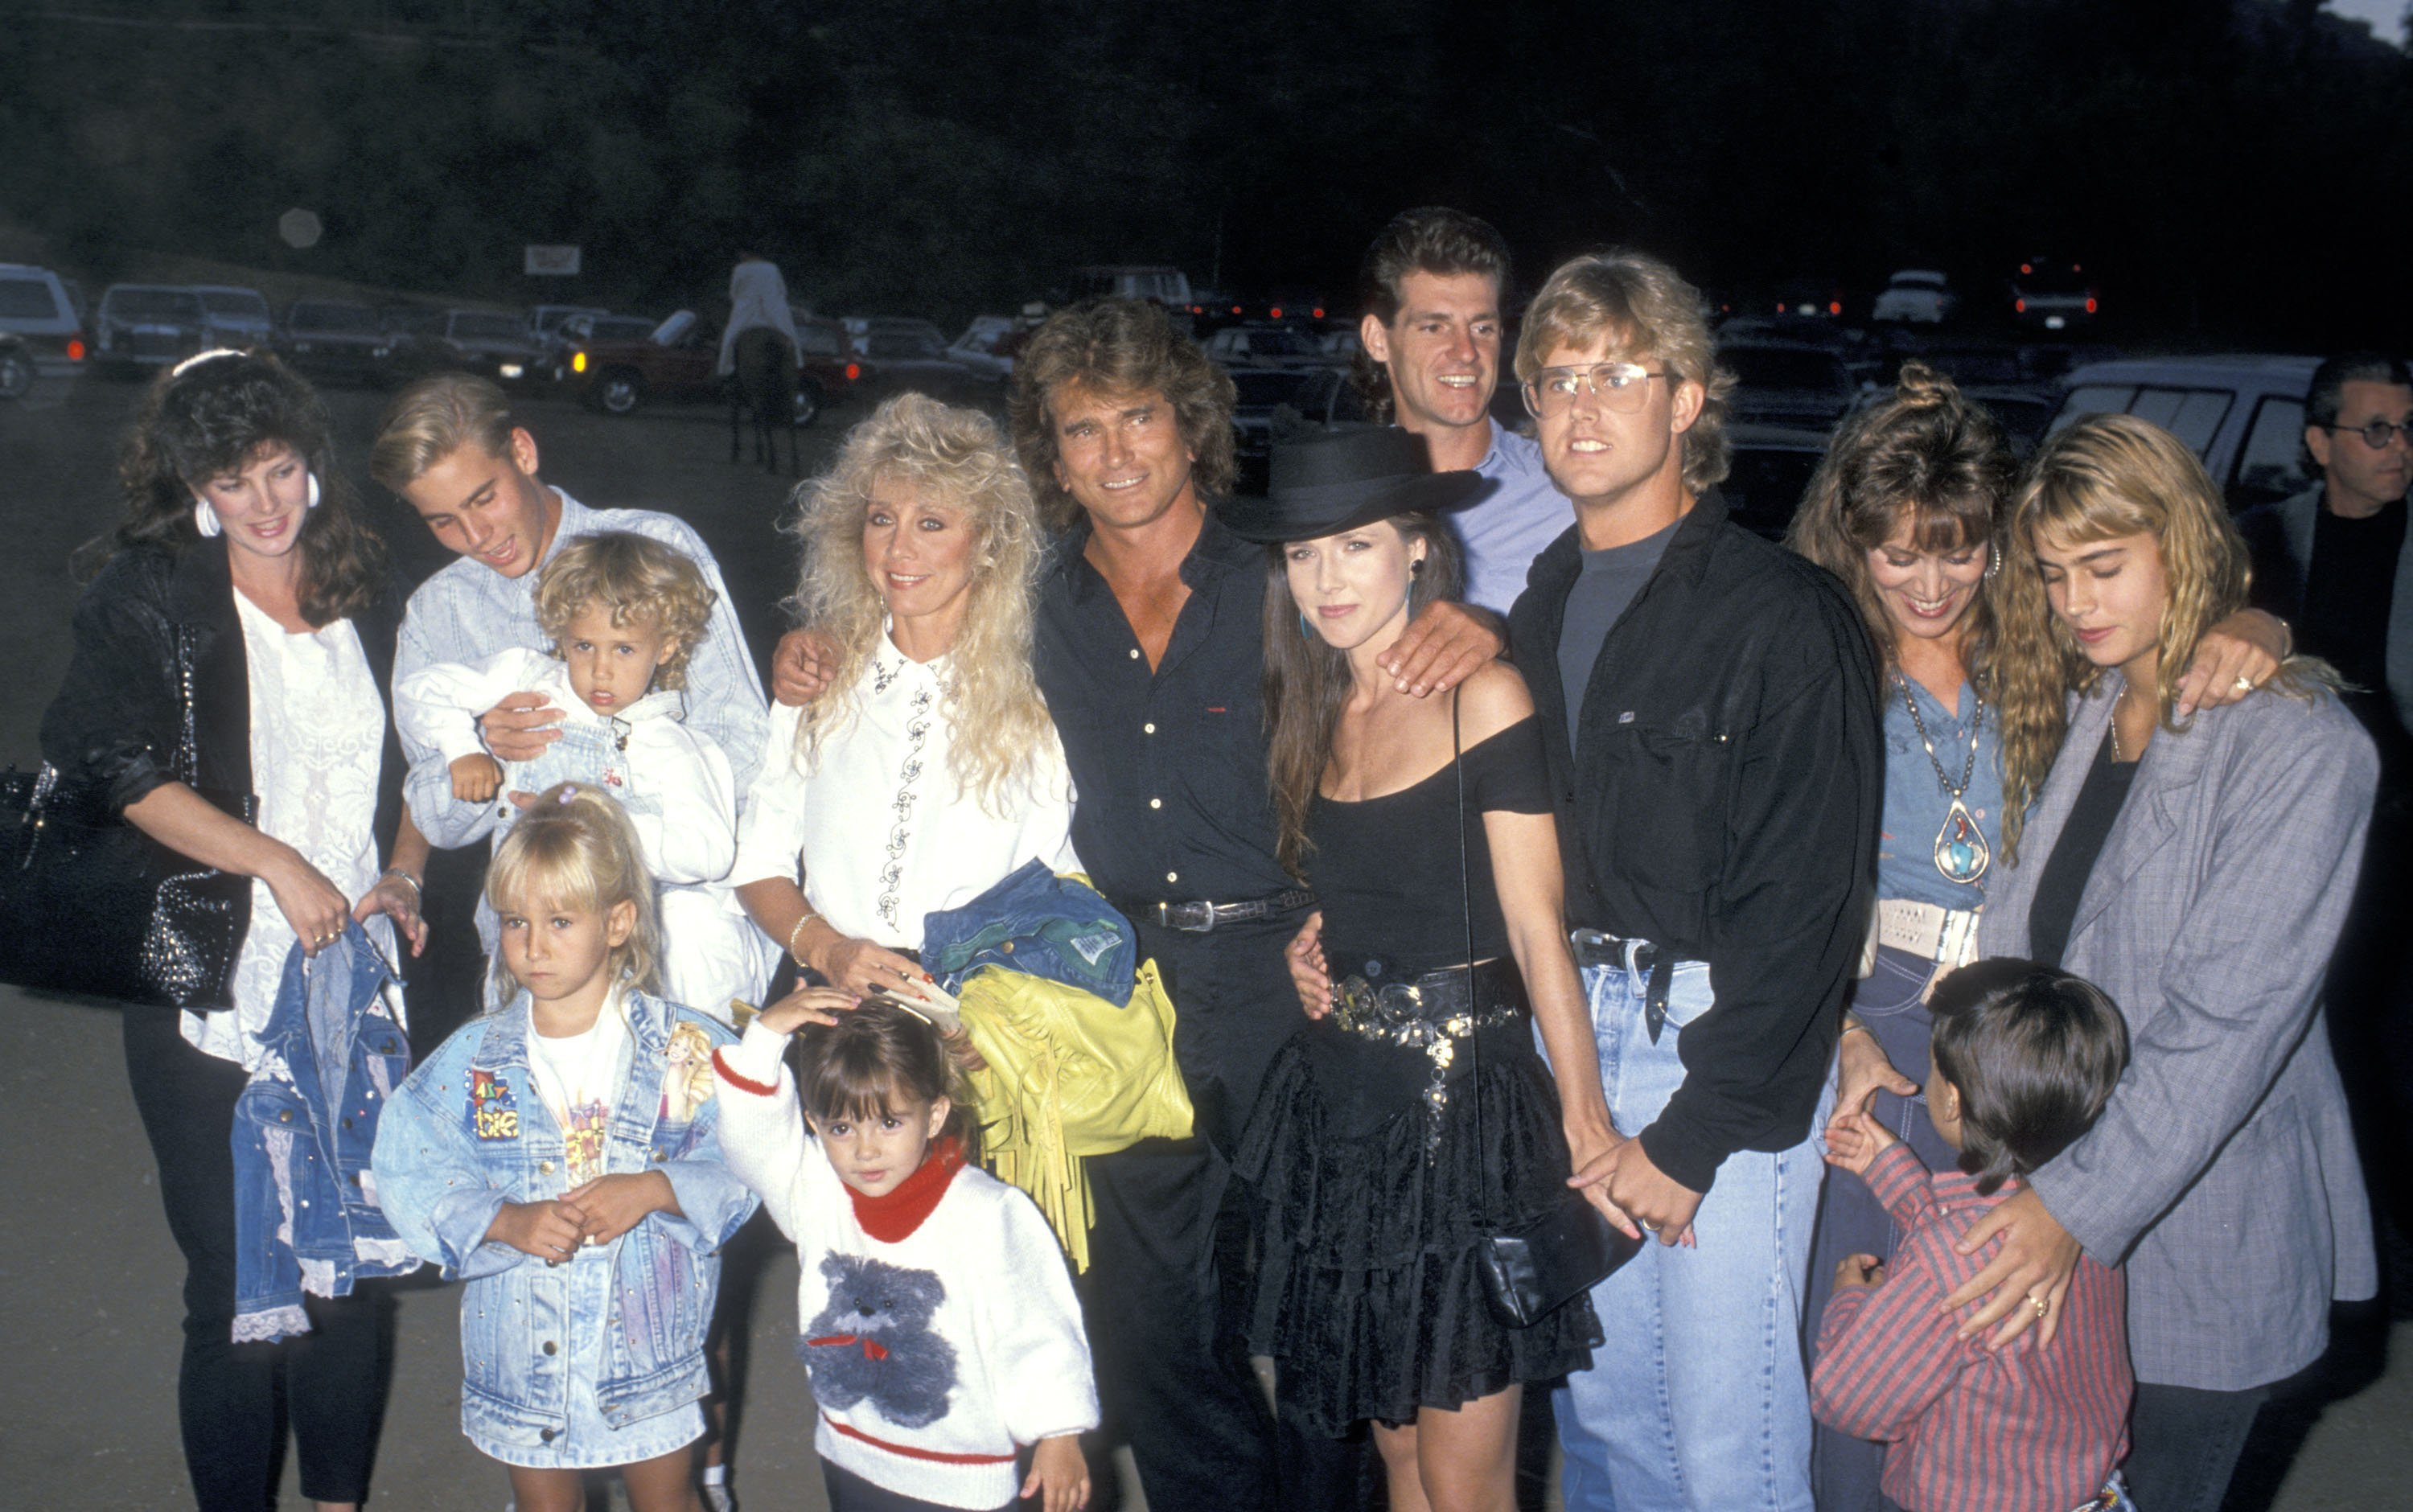 Michael Landon, Cindy Landon and his kids attend Third Annual Moonlight Roundup Benefiting Free Arts for Abused Children on July 29, 1989 | Photo: GettyImages